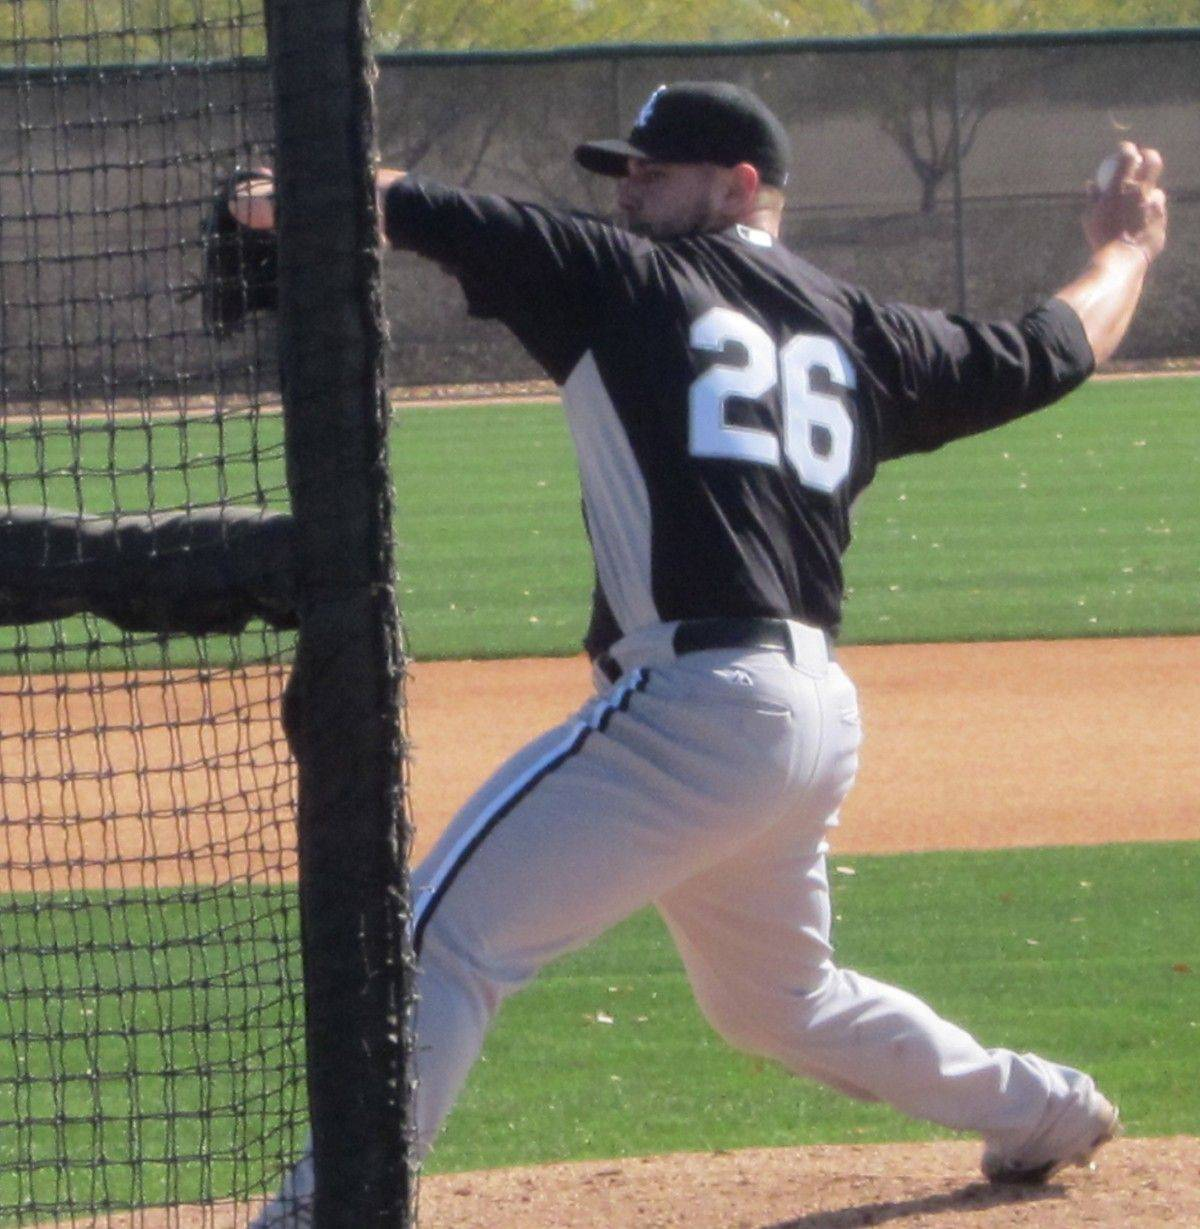 New White Sox relief pitcher Jesse Crain gets some work in Monday at Sox training facilities in Glendale, Ariz.